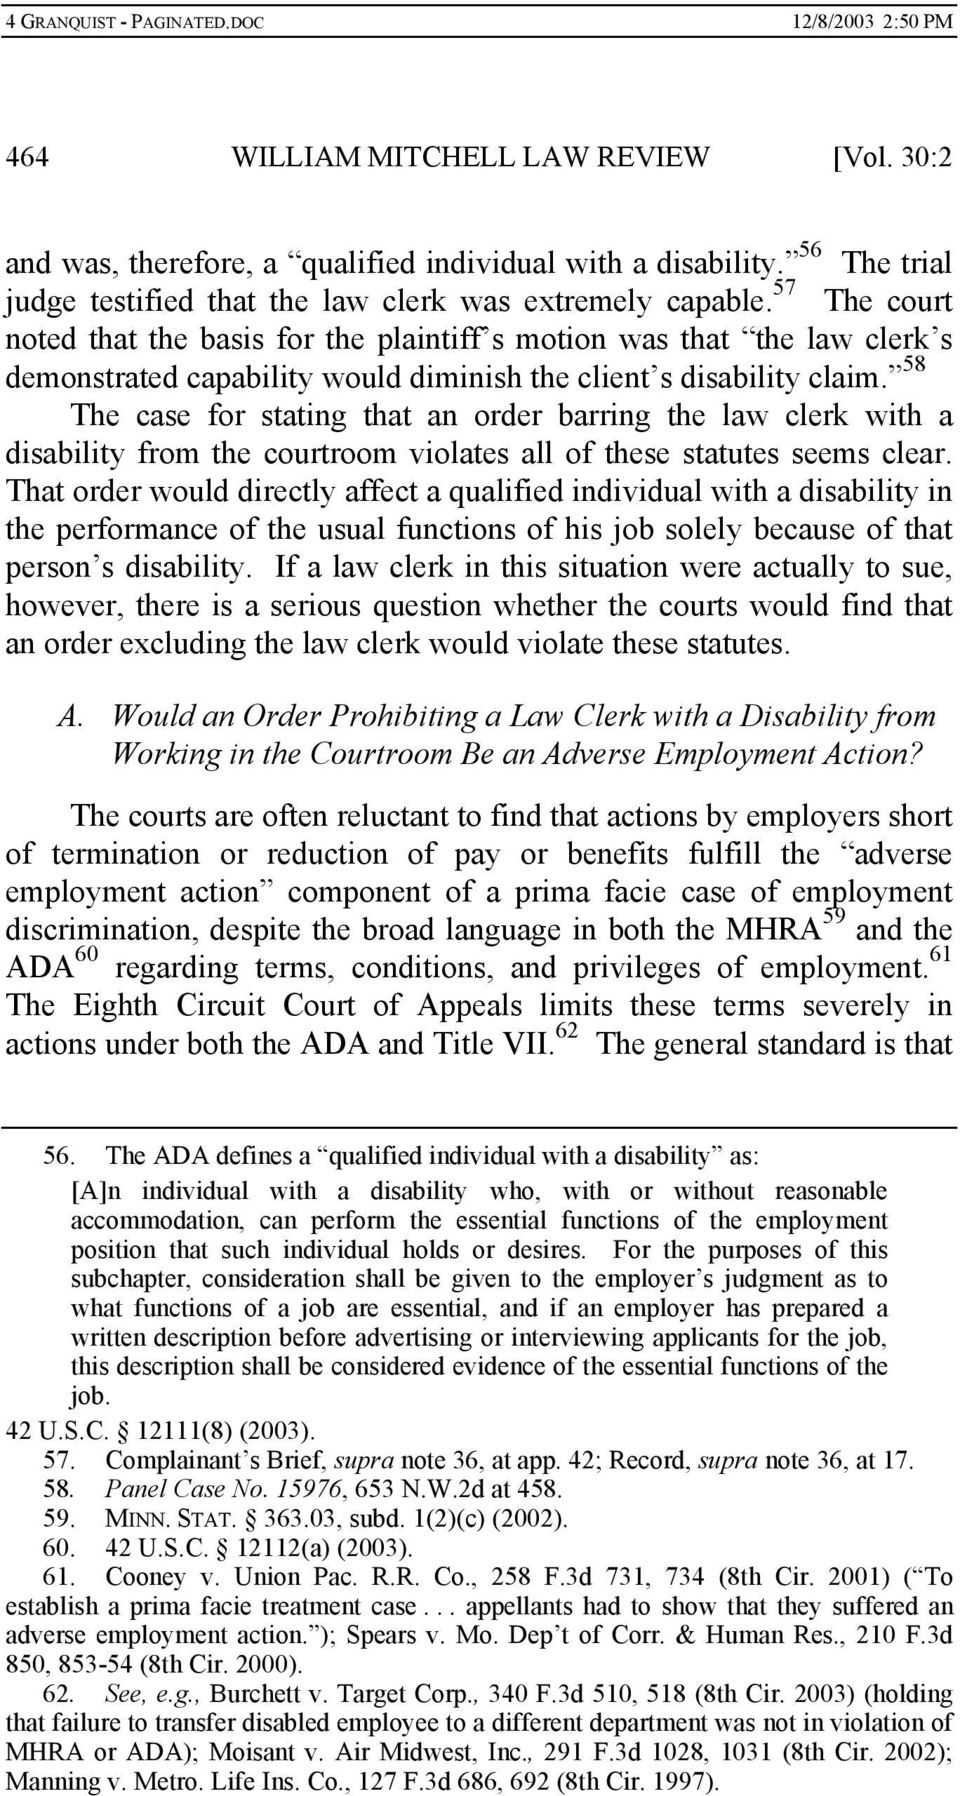 58 The case for stating that an order barring the law clerk with a disability from the courtroom violates all of these statutes seems clear.